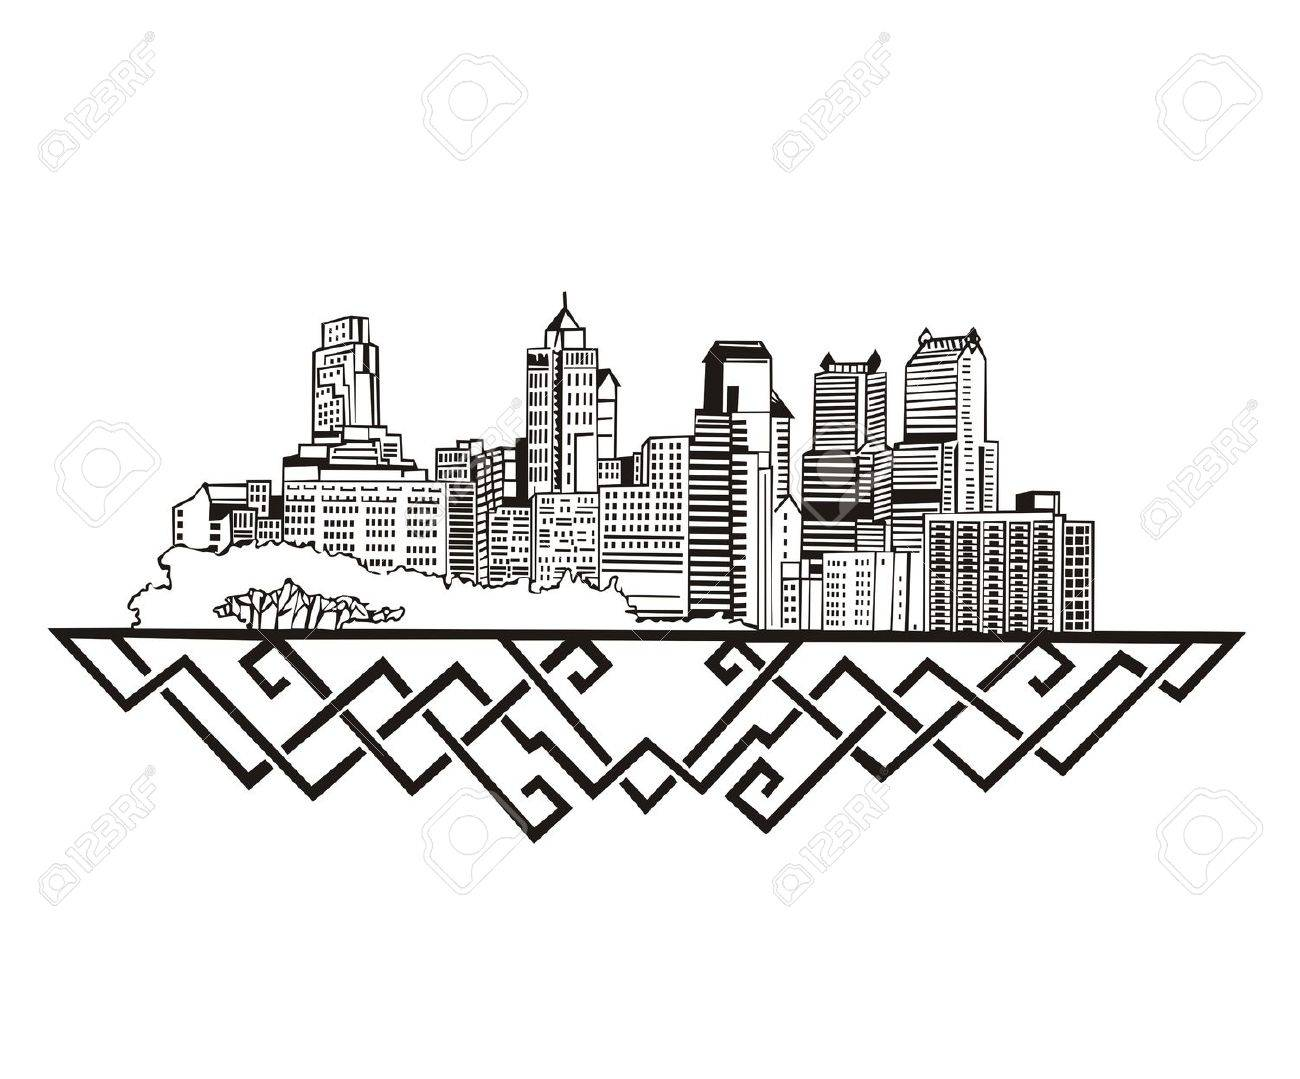 Las Vegas Skyline Drawing At Getdrawings